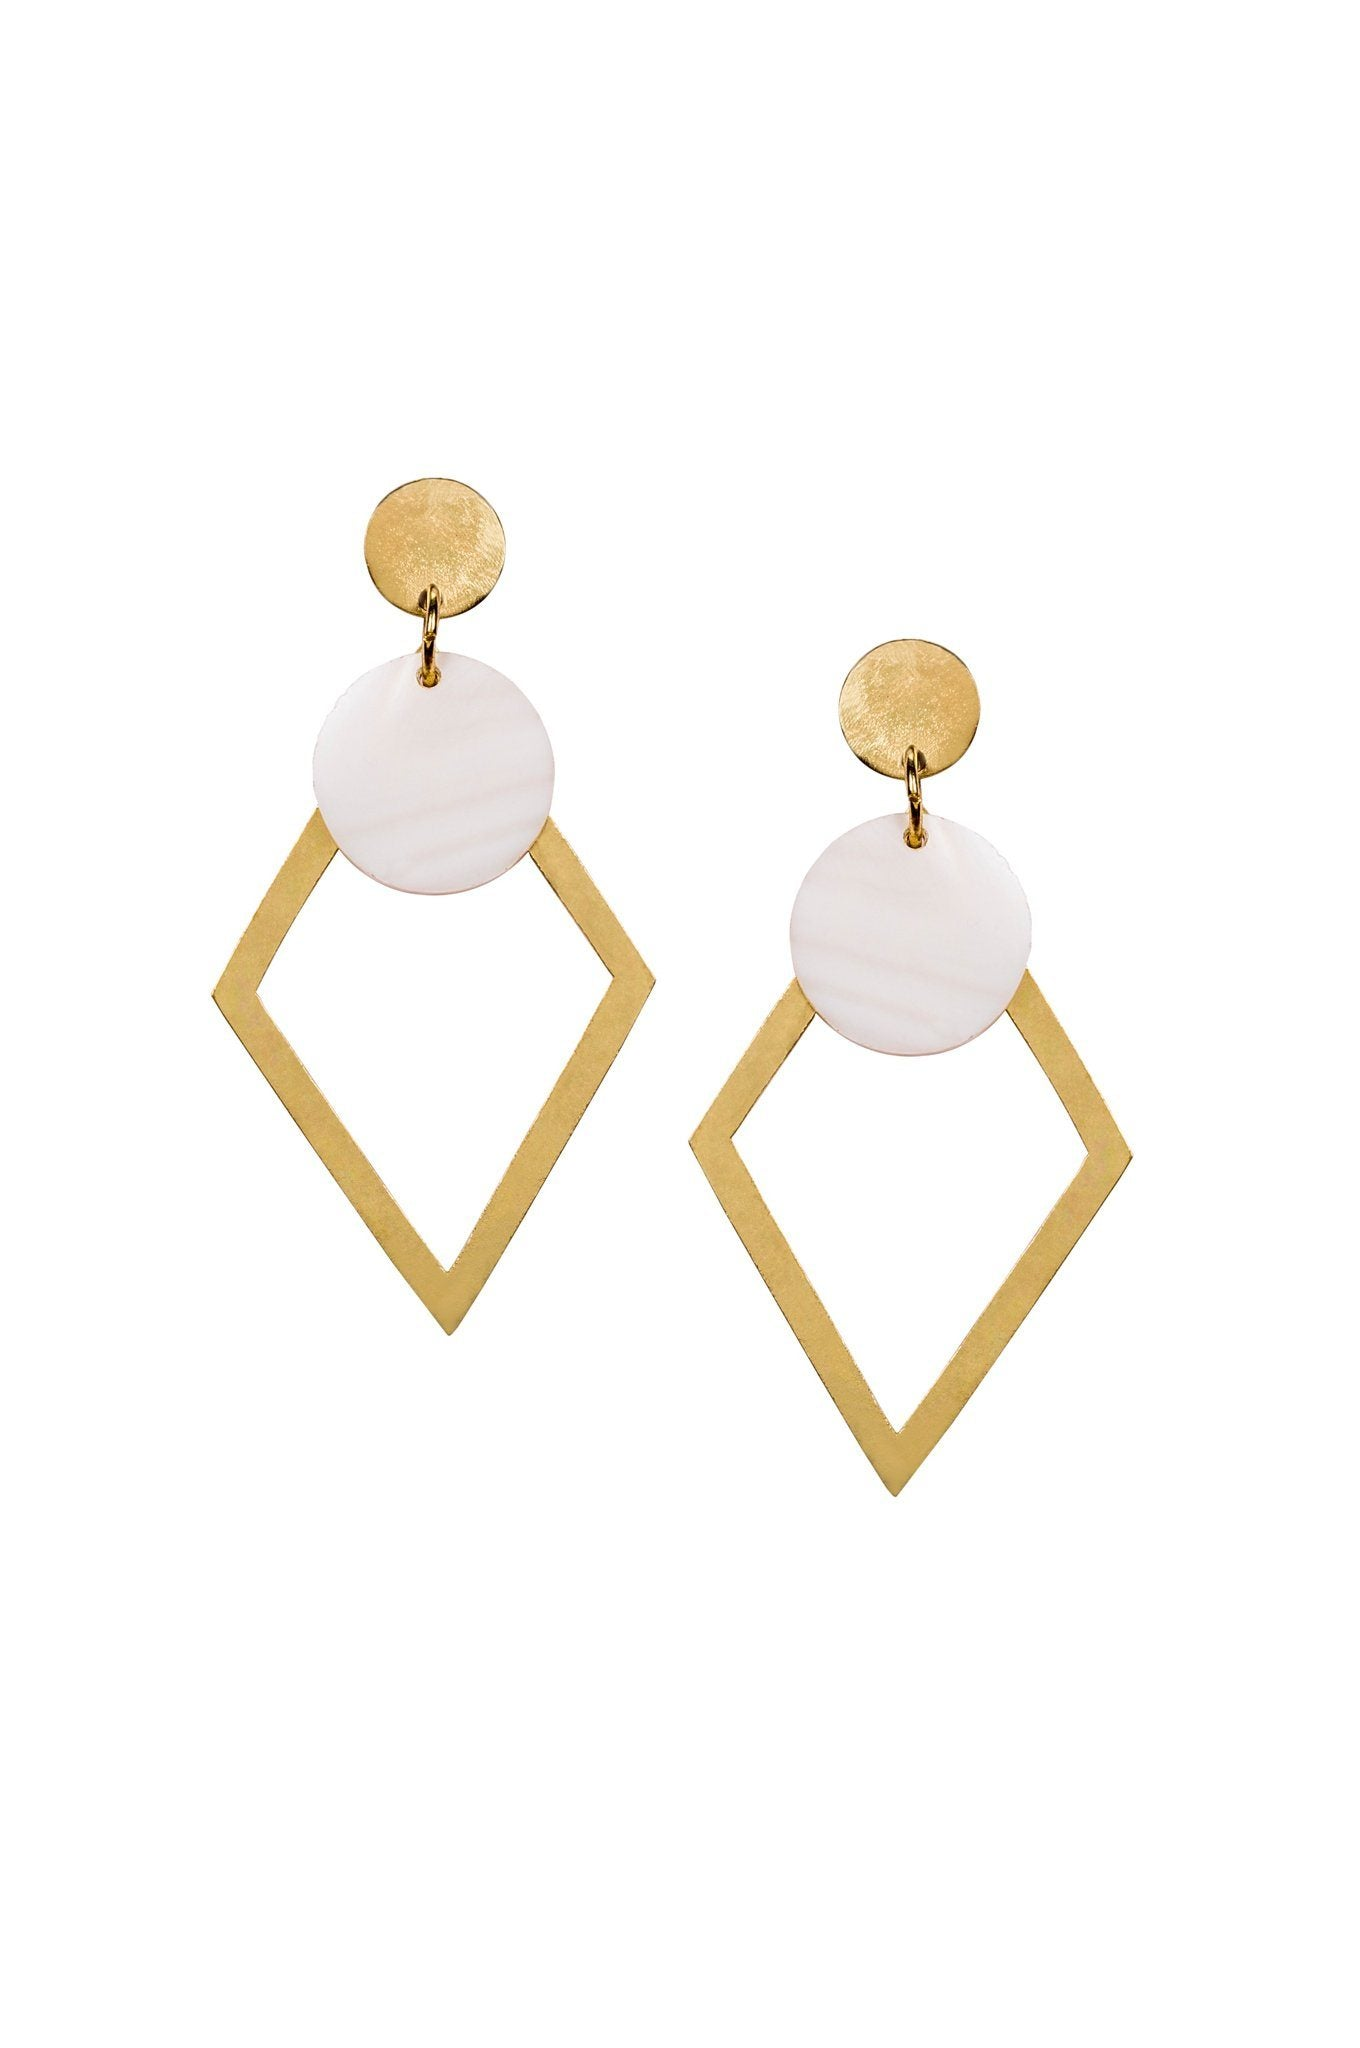 Arya earrings by Daughters of the Ganges - Komodo Fashion